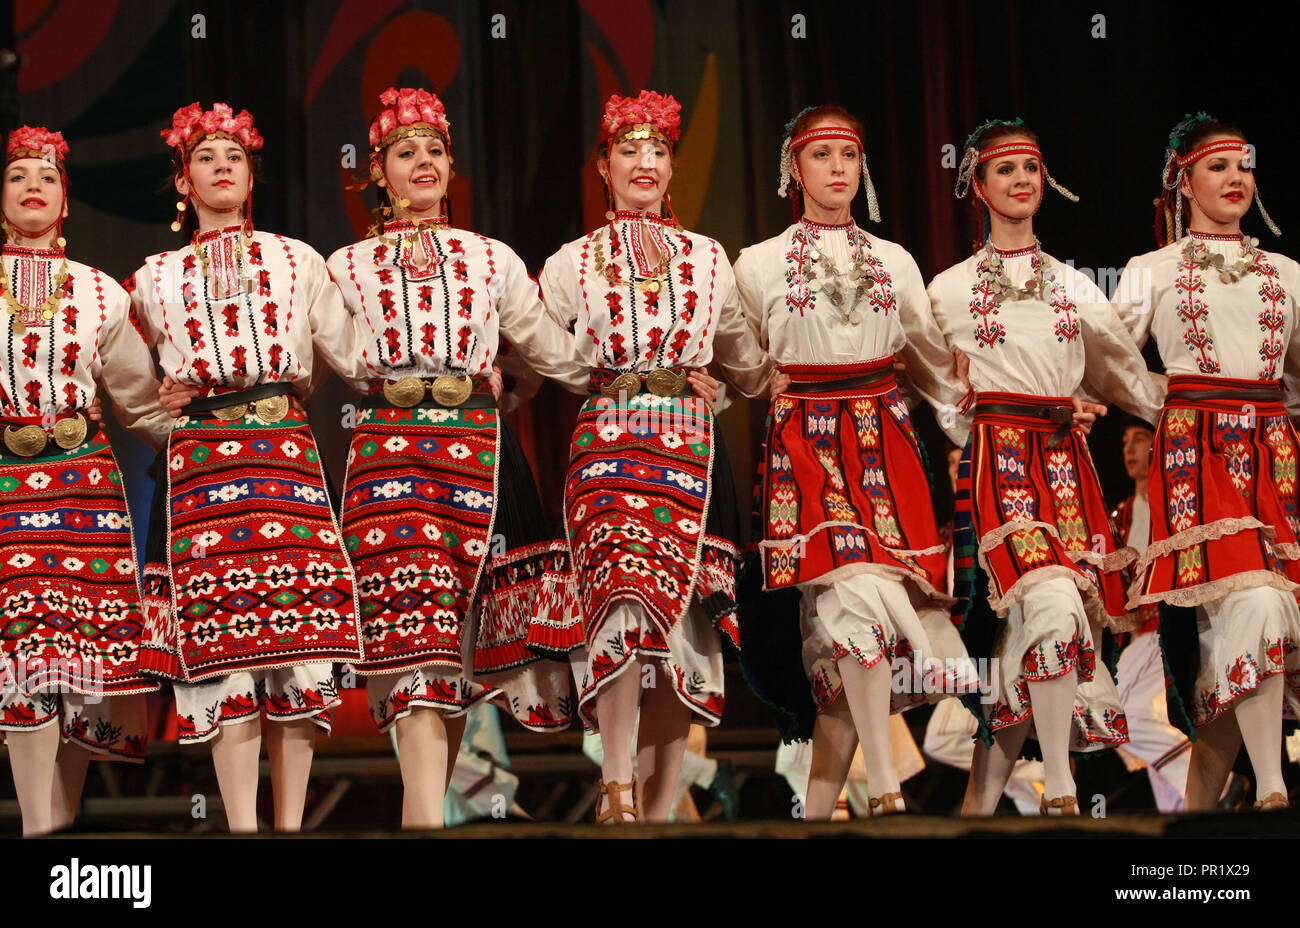 people in traditional folklore